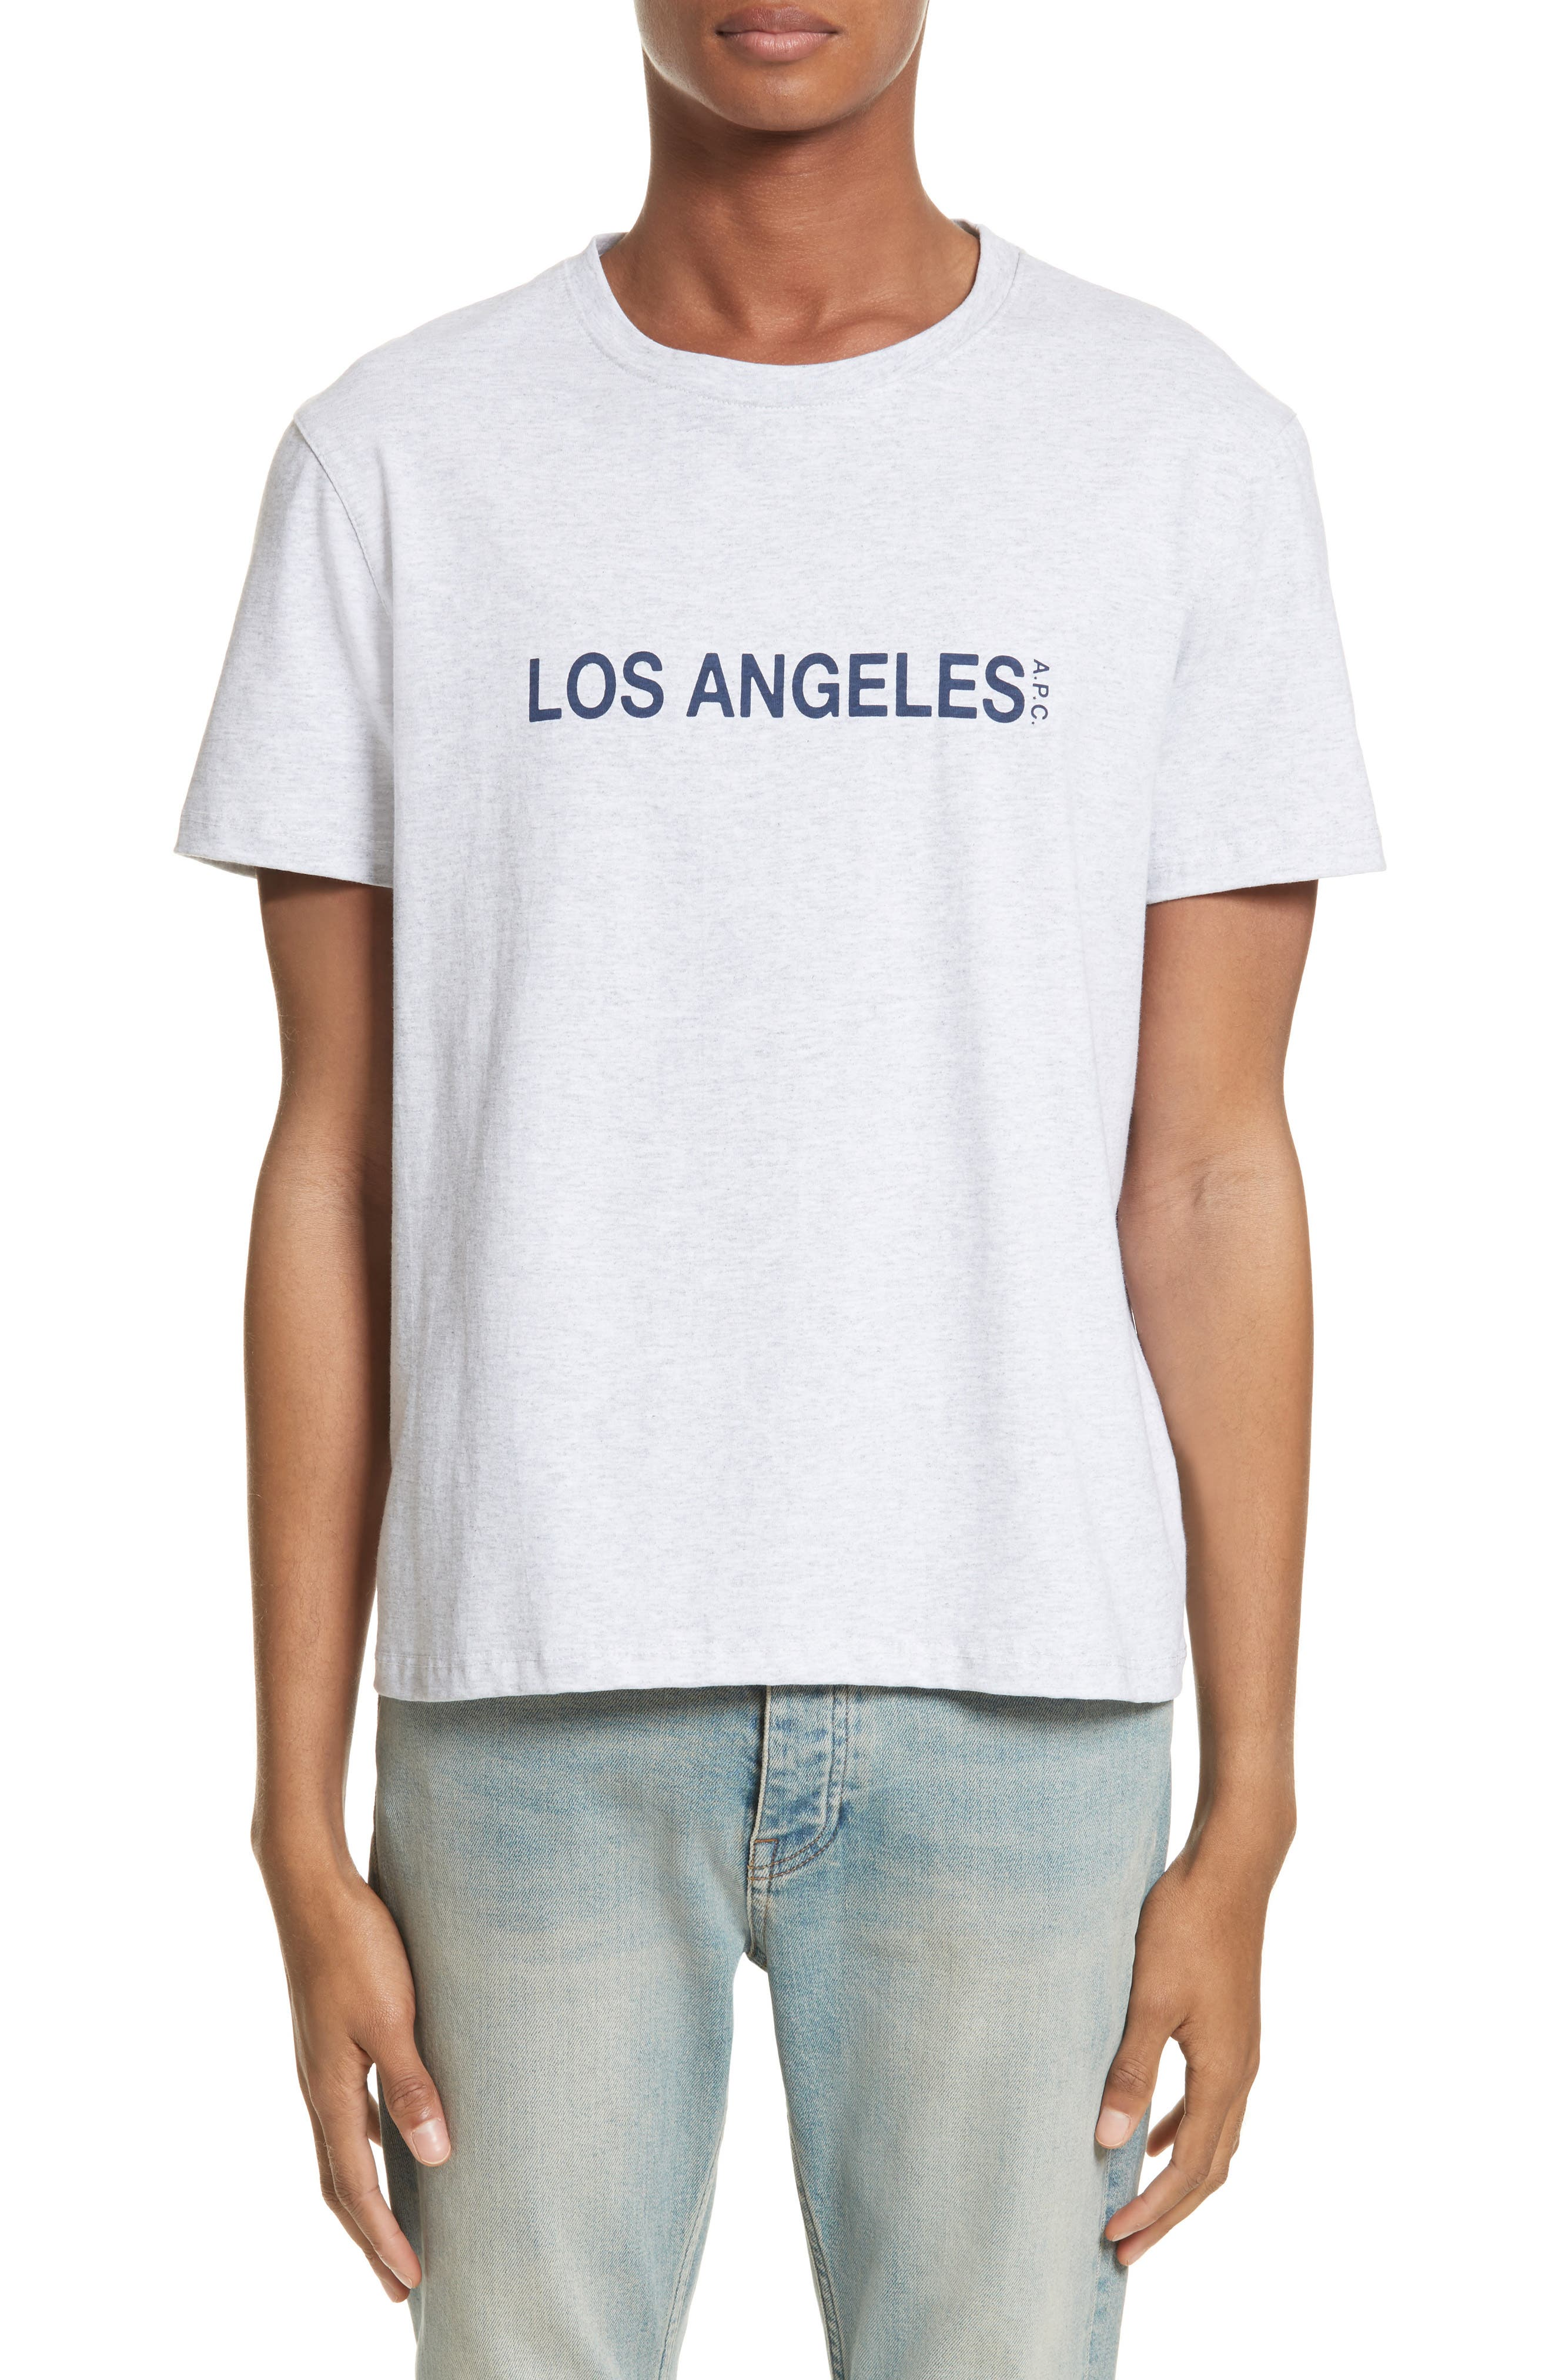 Los Angeles Graphic T-Shirt,                             Main thumbnail 1, color,                             Gris Chine Pla